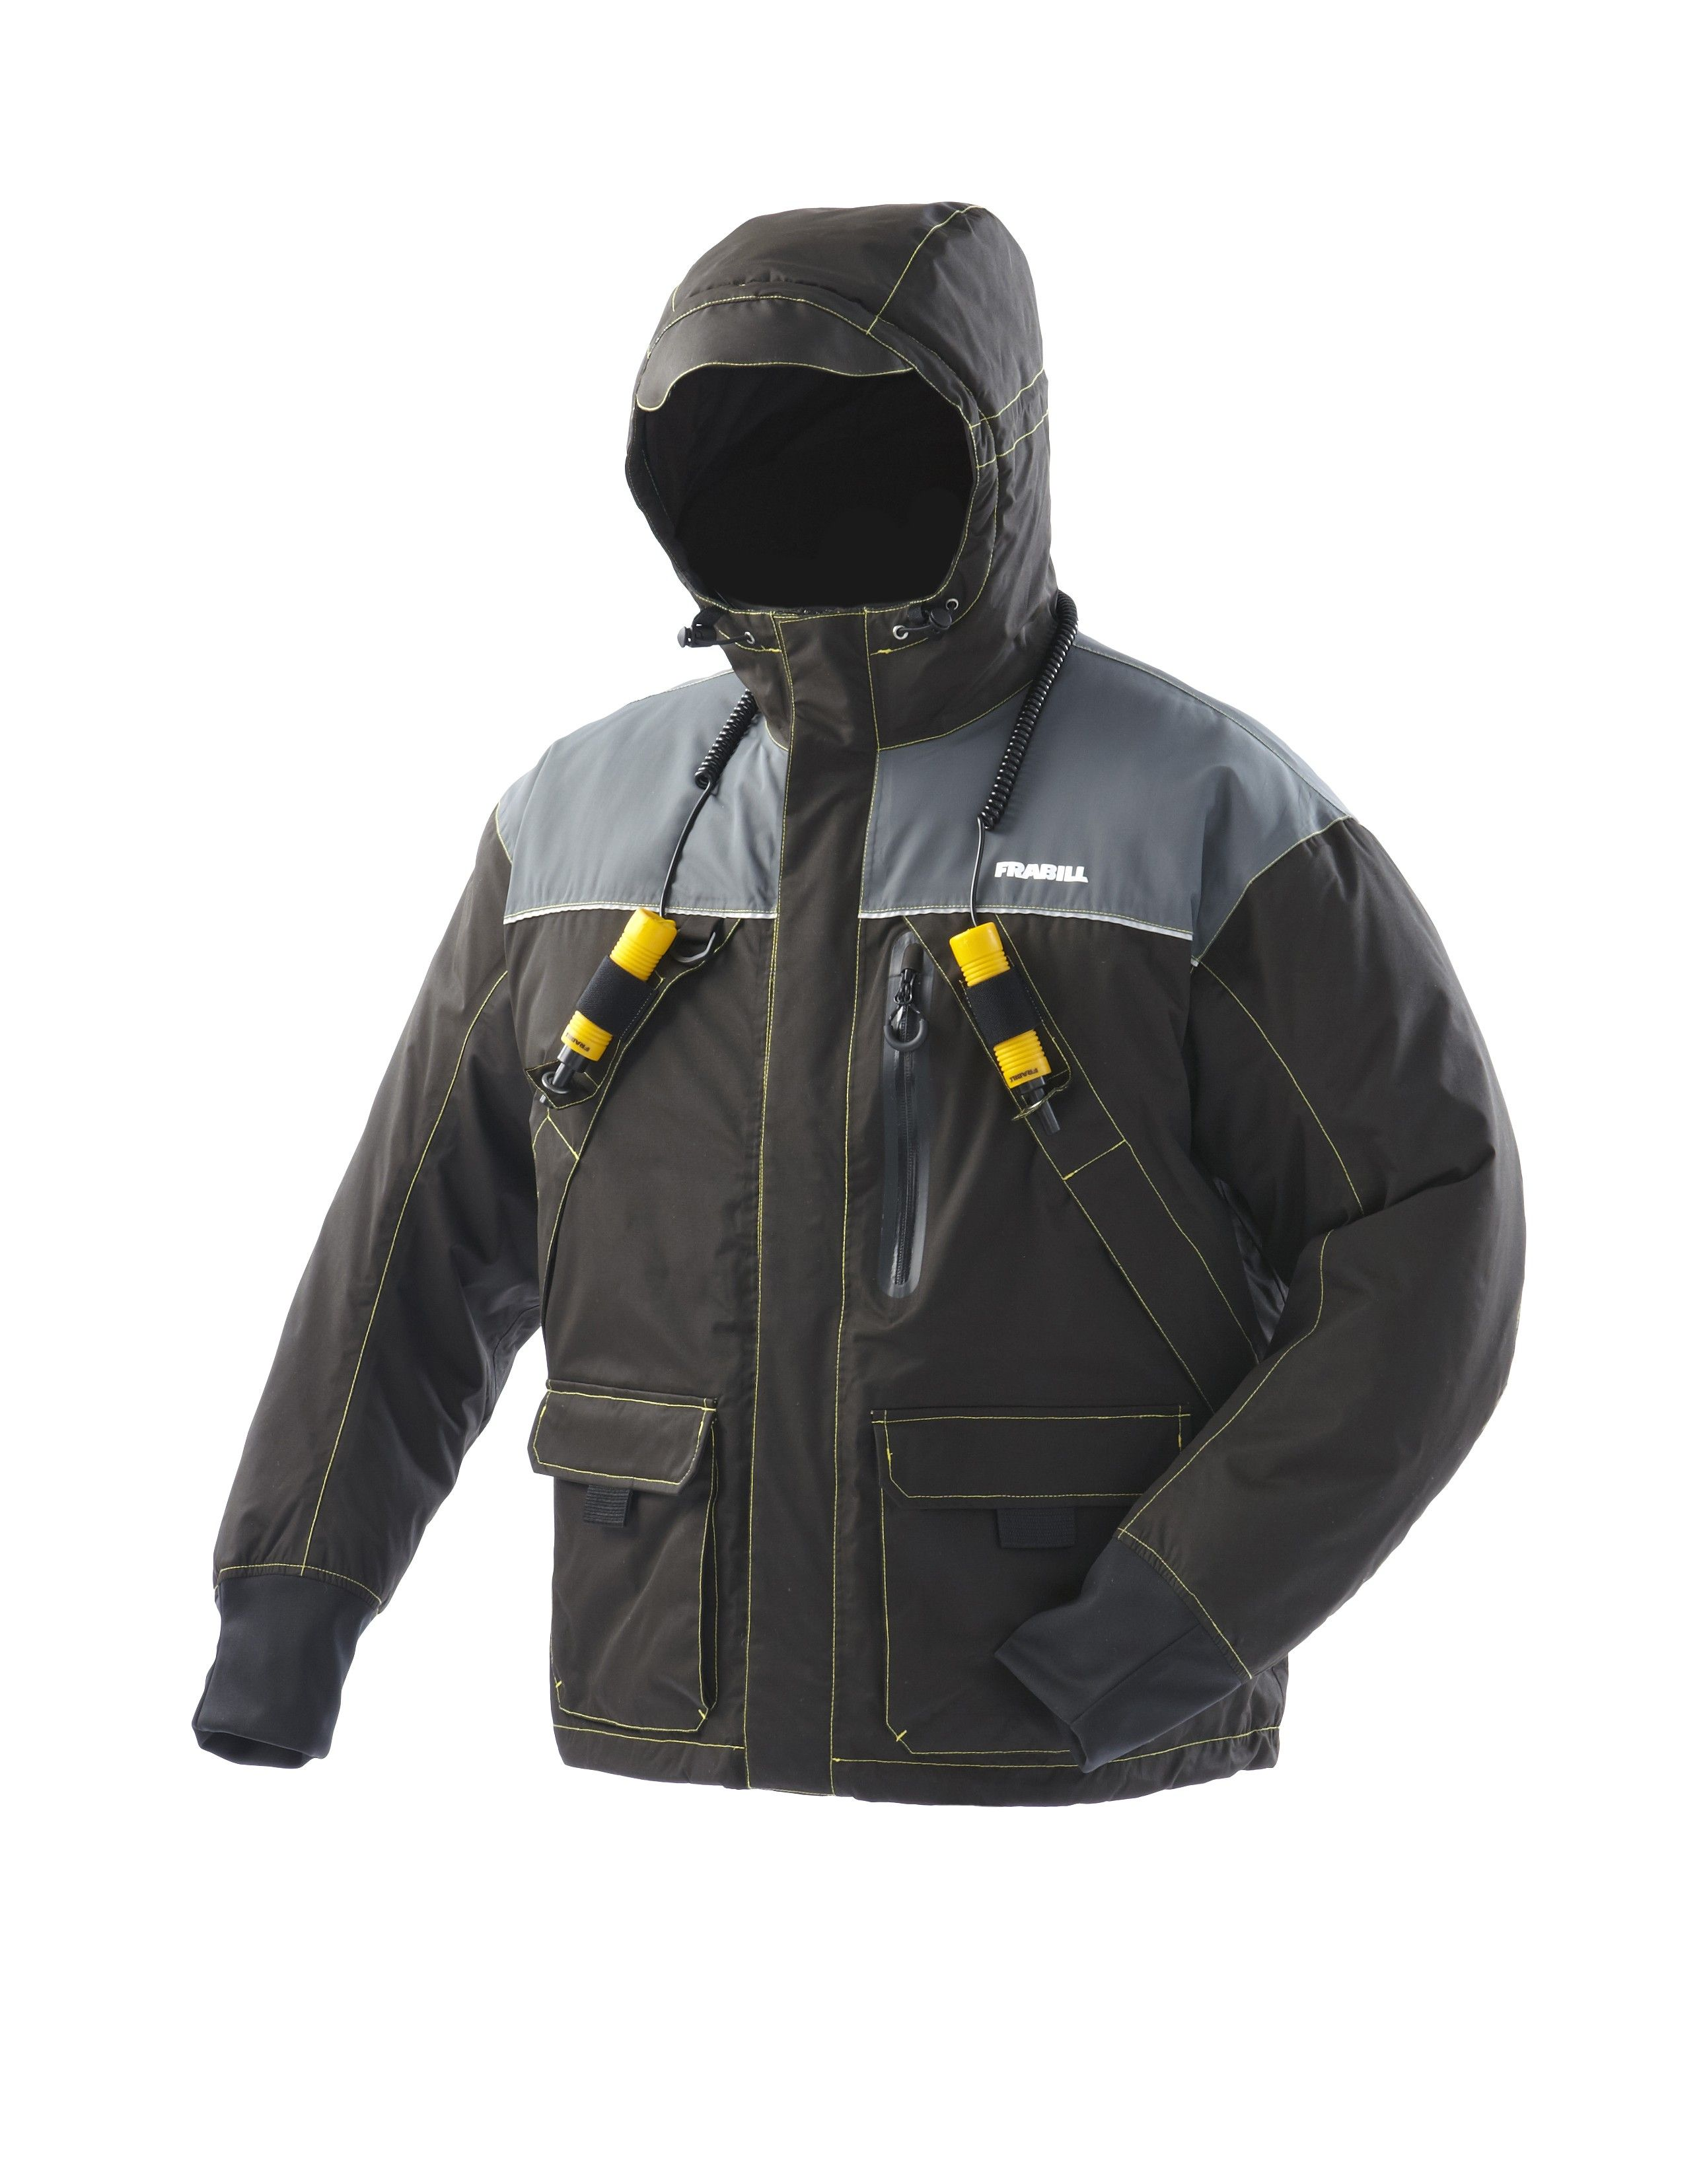 I3 JACKET Frabill Official Site Frabill Store Fishing